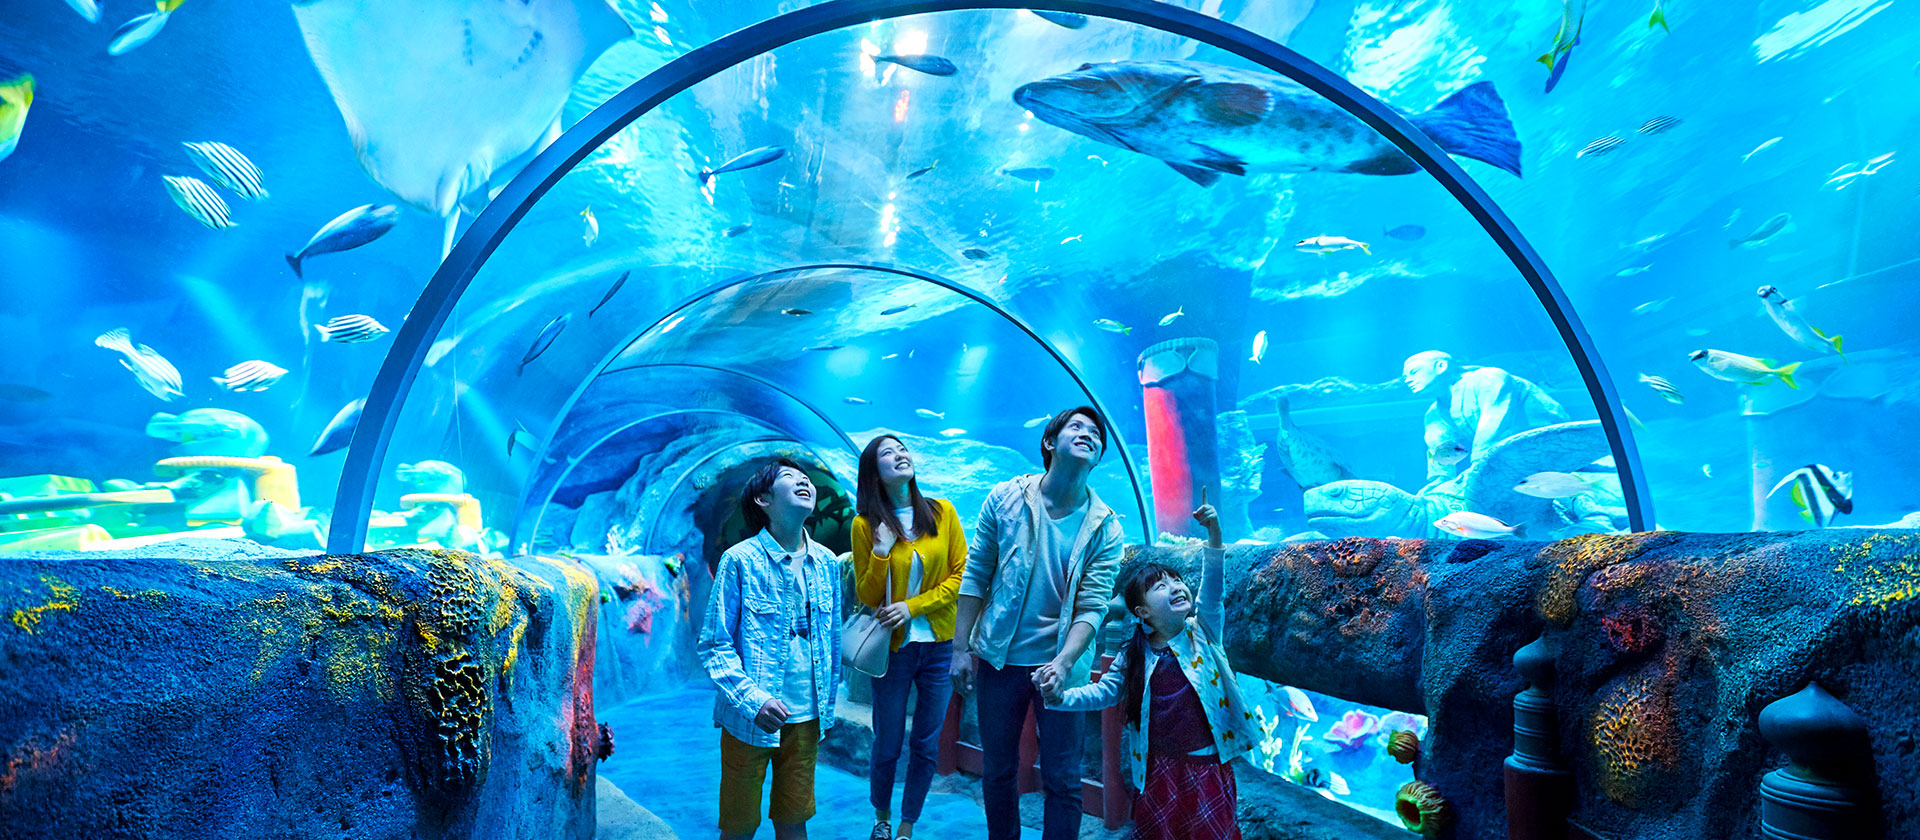 Explore the aquarium